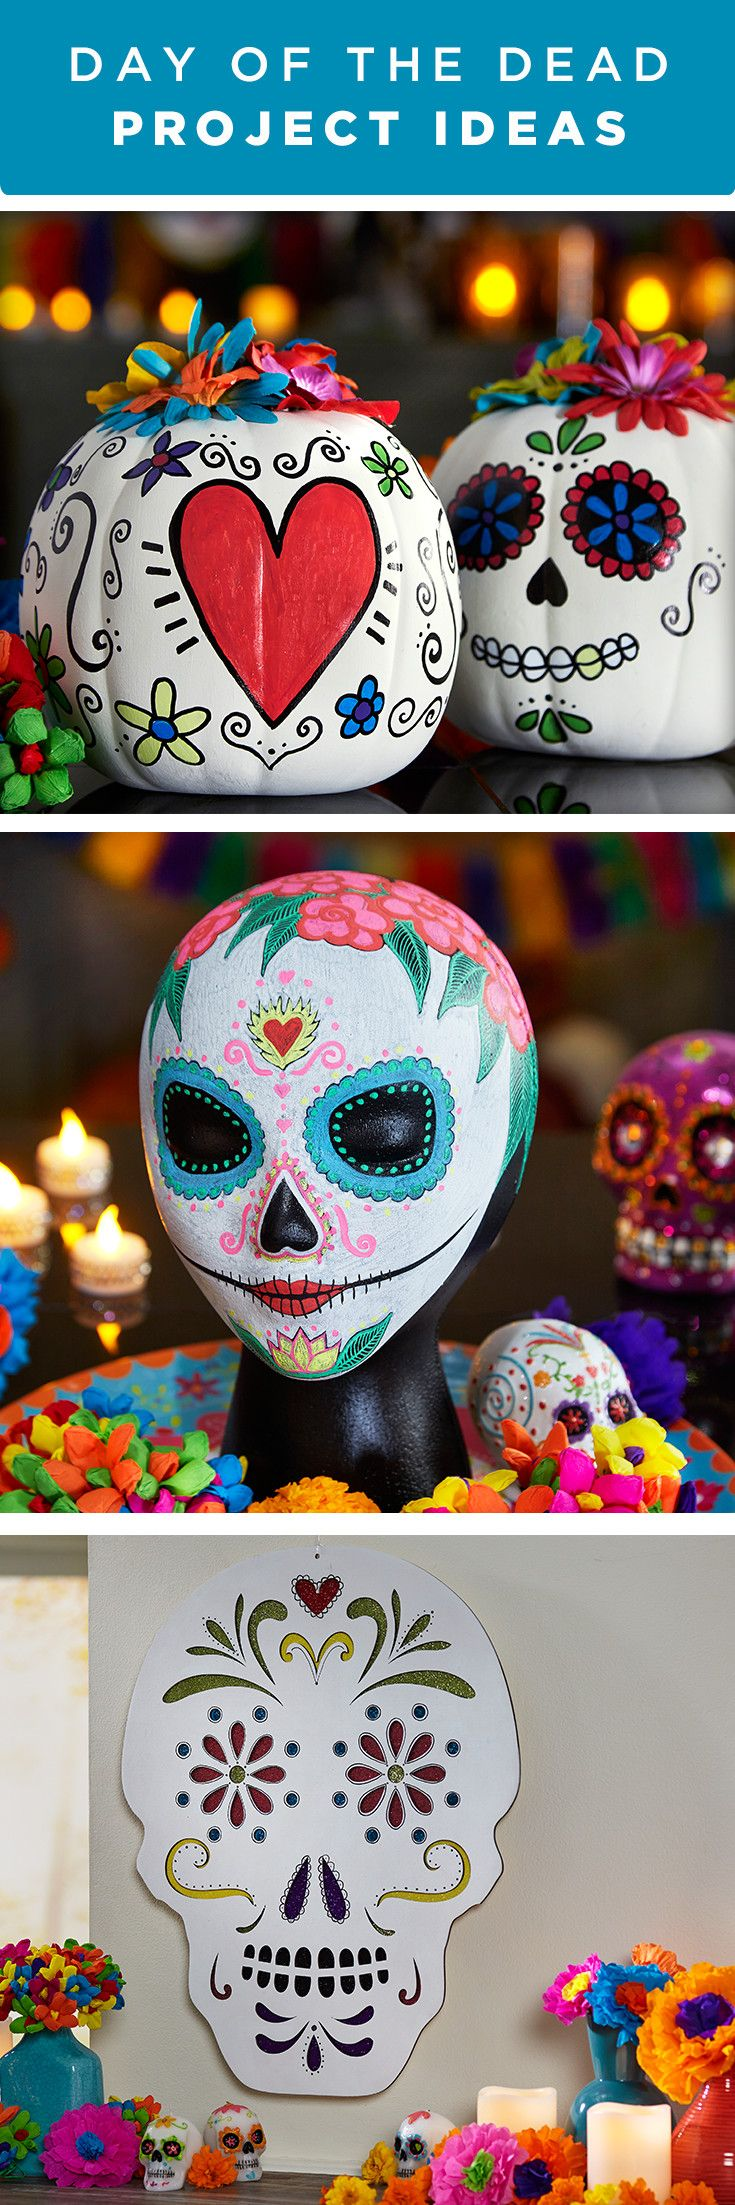 celebrate dia de los muertos with colorful day of the dead project ideas find everything - Michaels Halloween Decorations